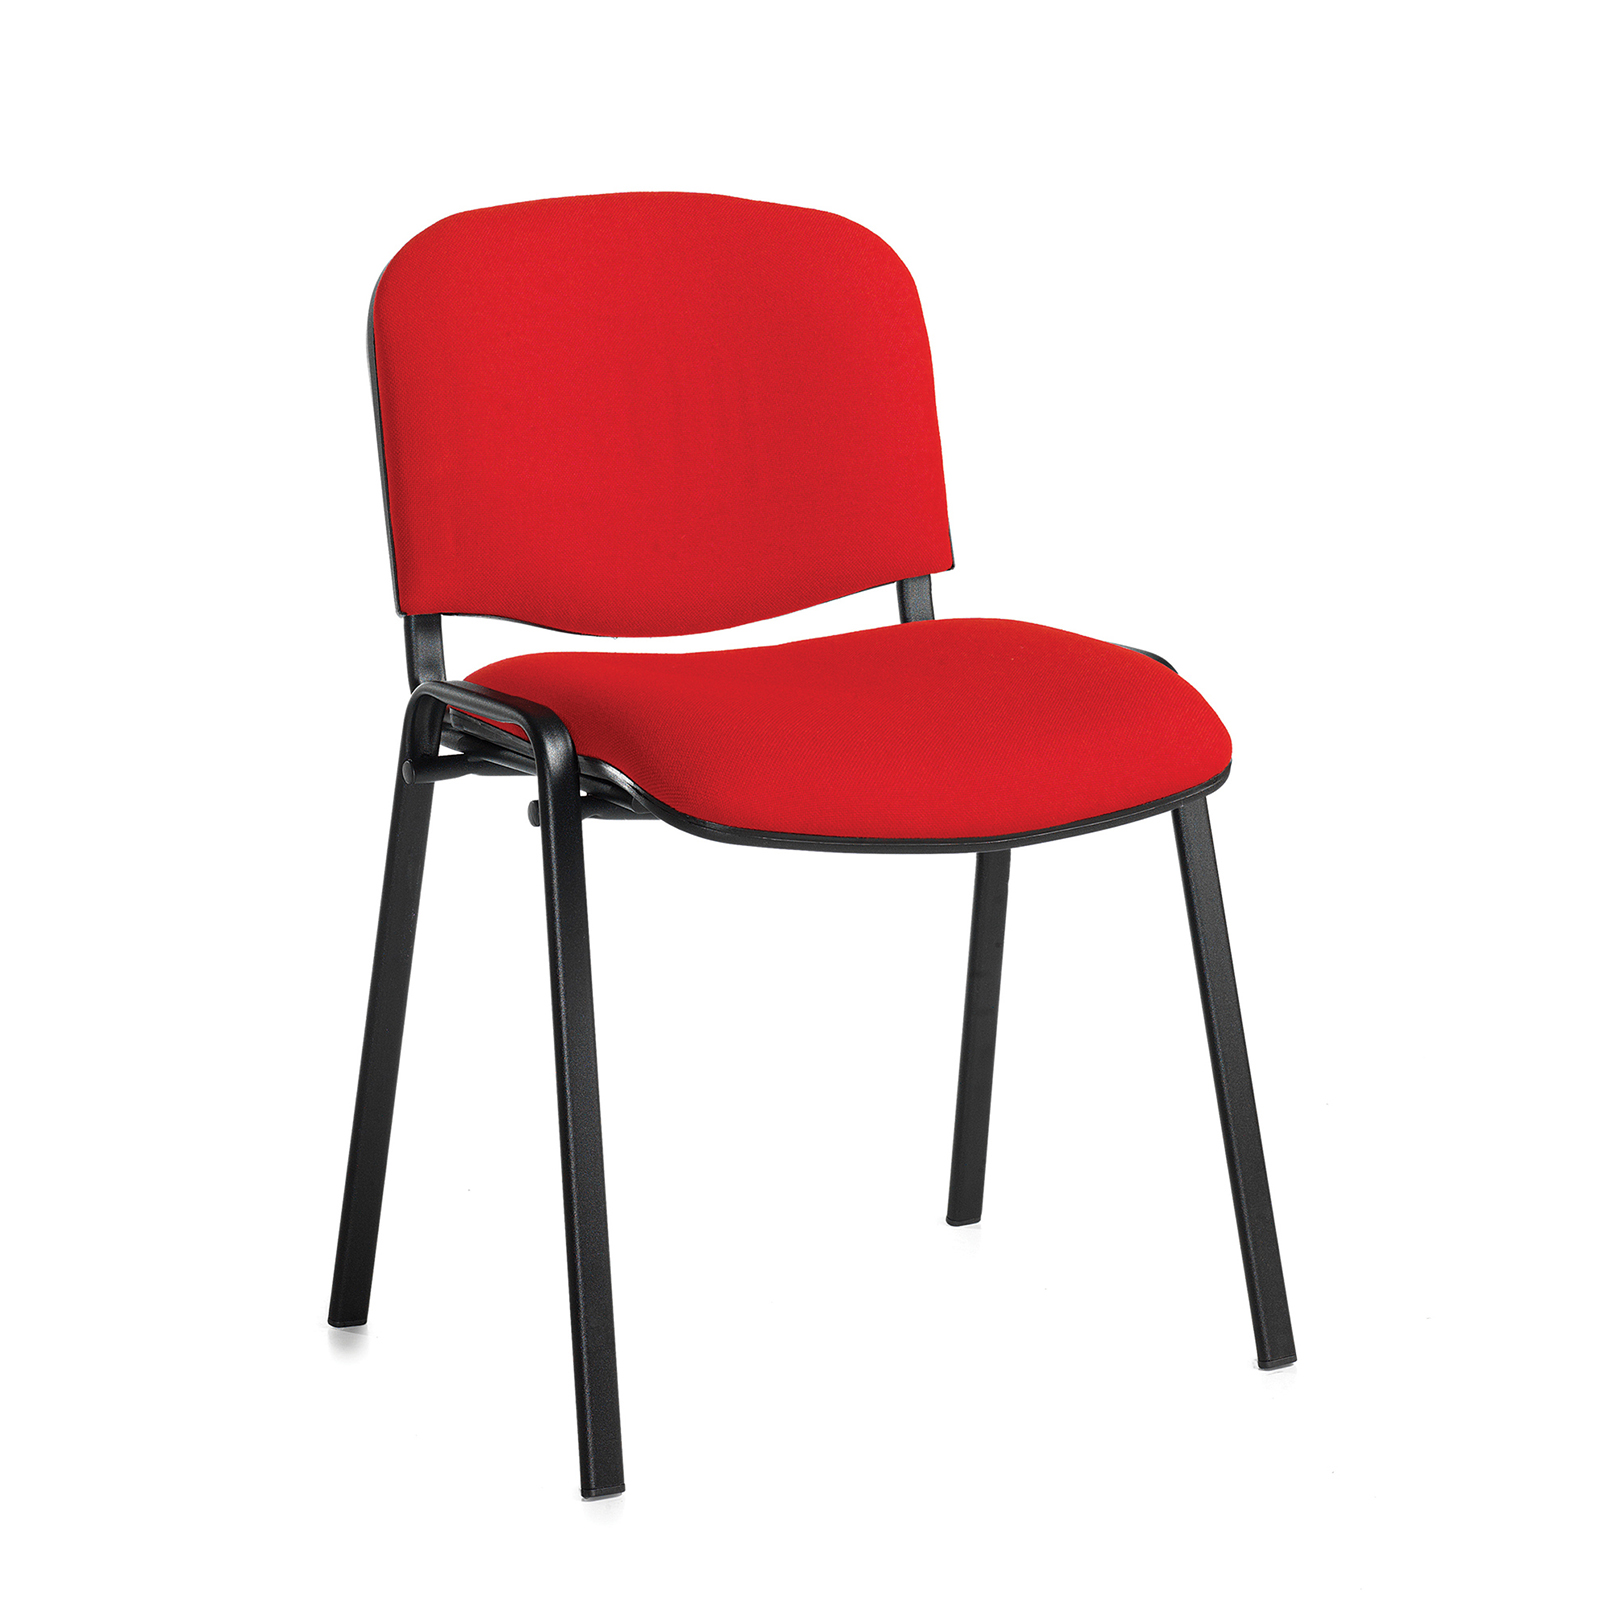 Boardroom / Meeting Taurus meeting room stackable chair with black frame and no arms - red